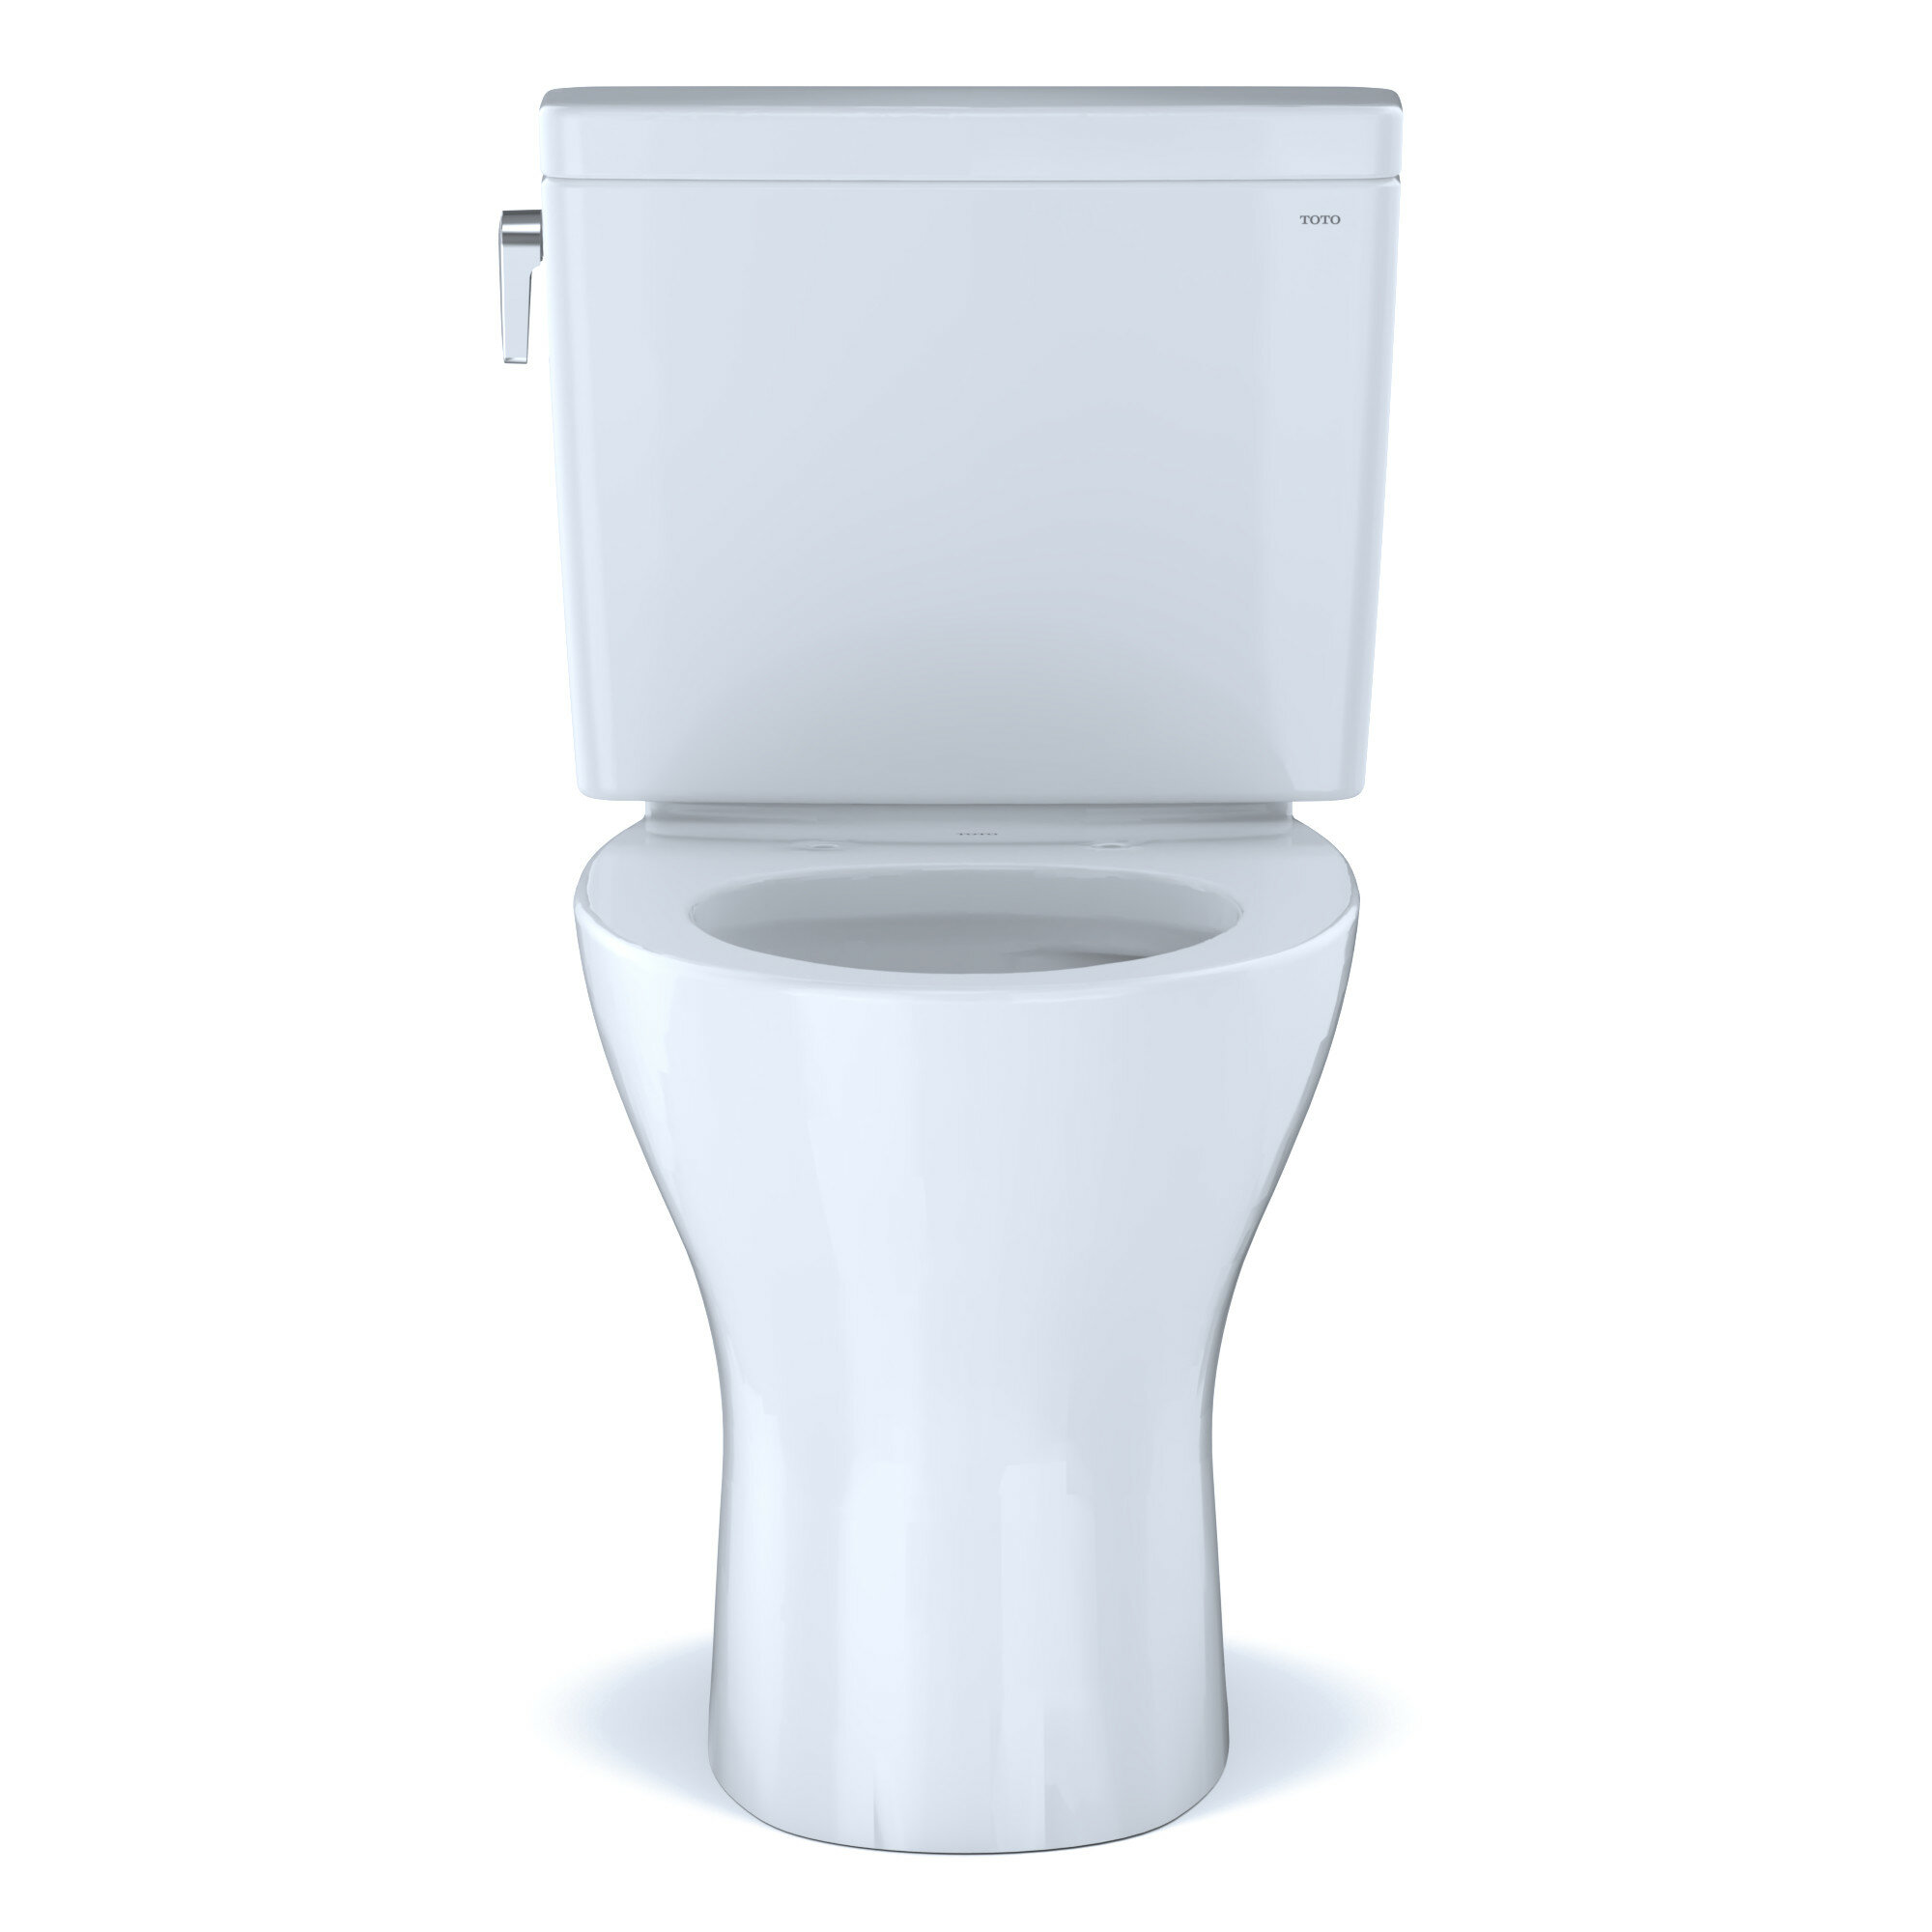 Toto Drake Two Piece Elongated Dual Flush 1 6 And 0 8 Gpf Universal Height Dynamax Tornado Flush Toilet For 10 Inch Rough In With Cefiontet With Wax Ring And Toilet Mounting Bolts Seat Not Included